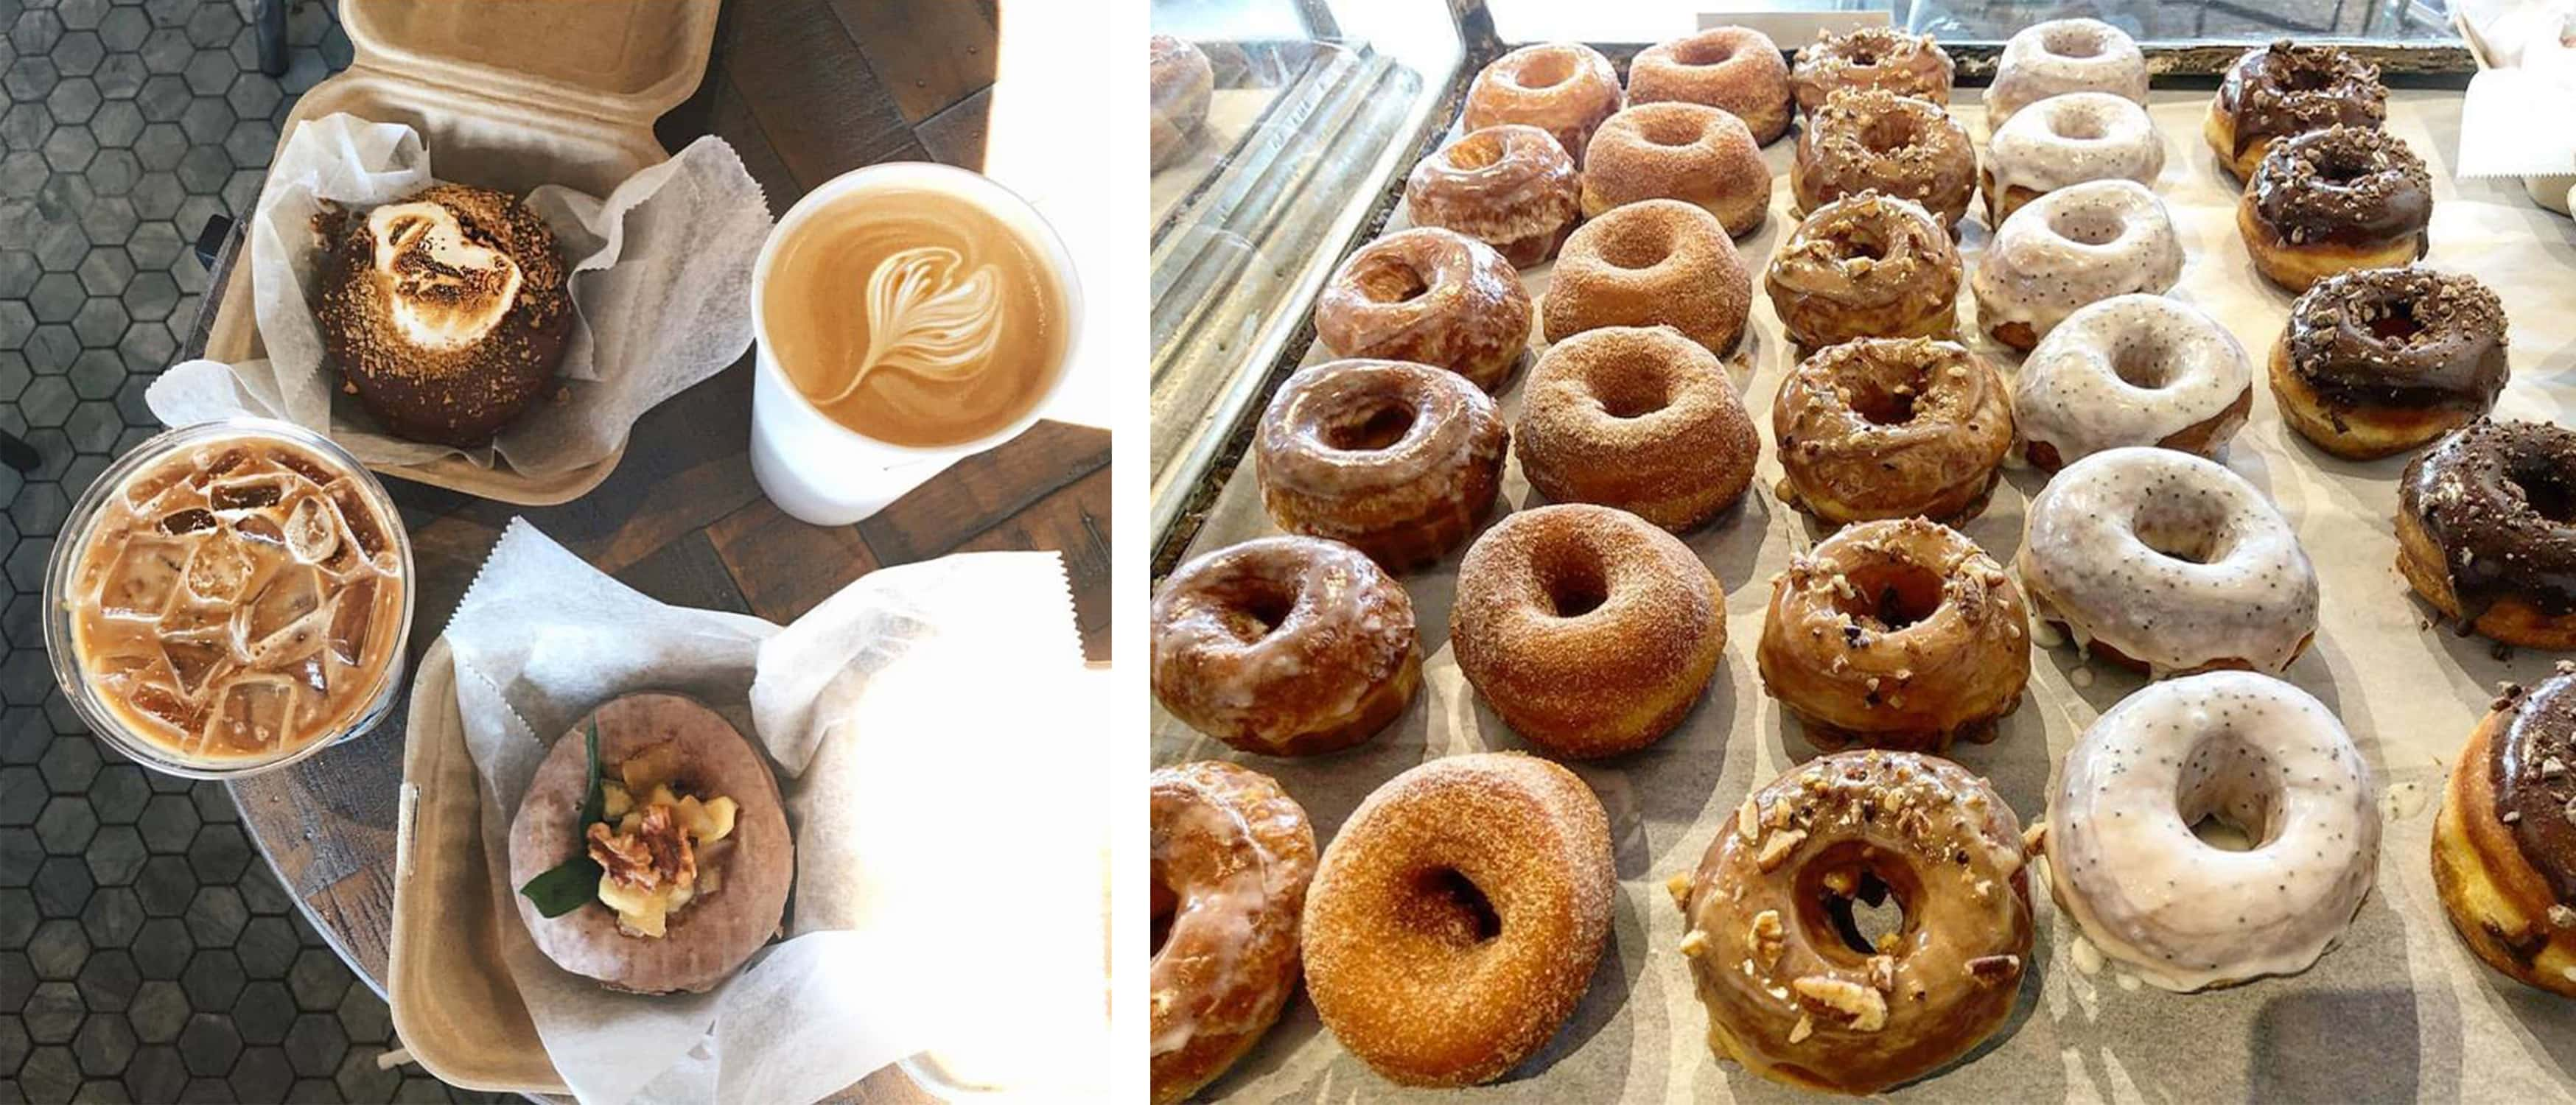 you can't miss grindstone coffee & donuts when you're in the hamptons - here are my top 10 hamptons getaway essentials - darci hether new york